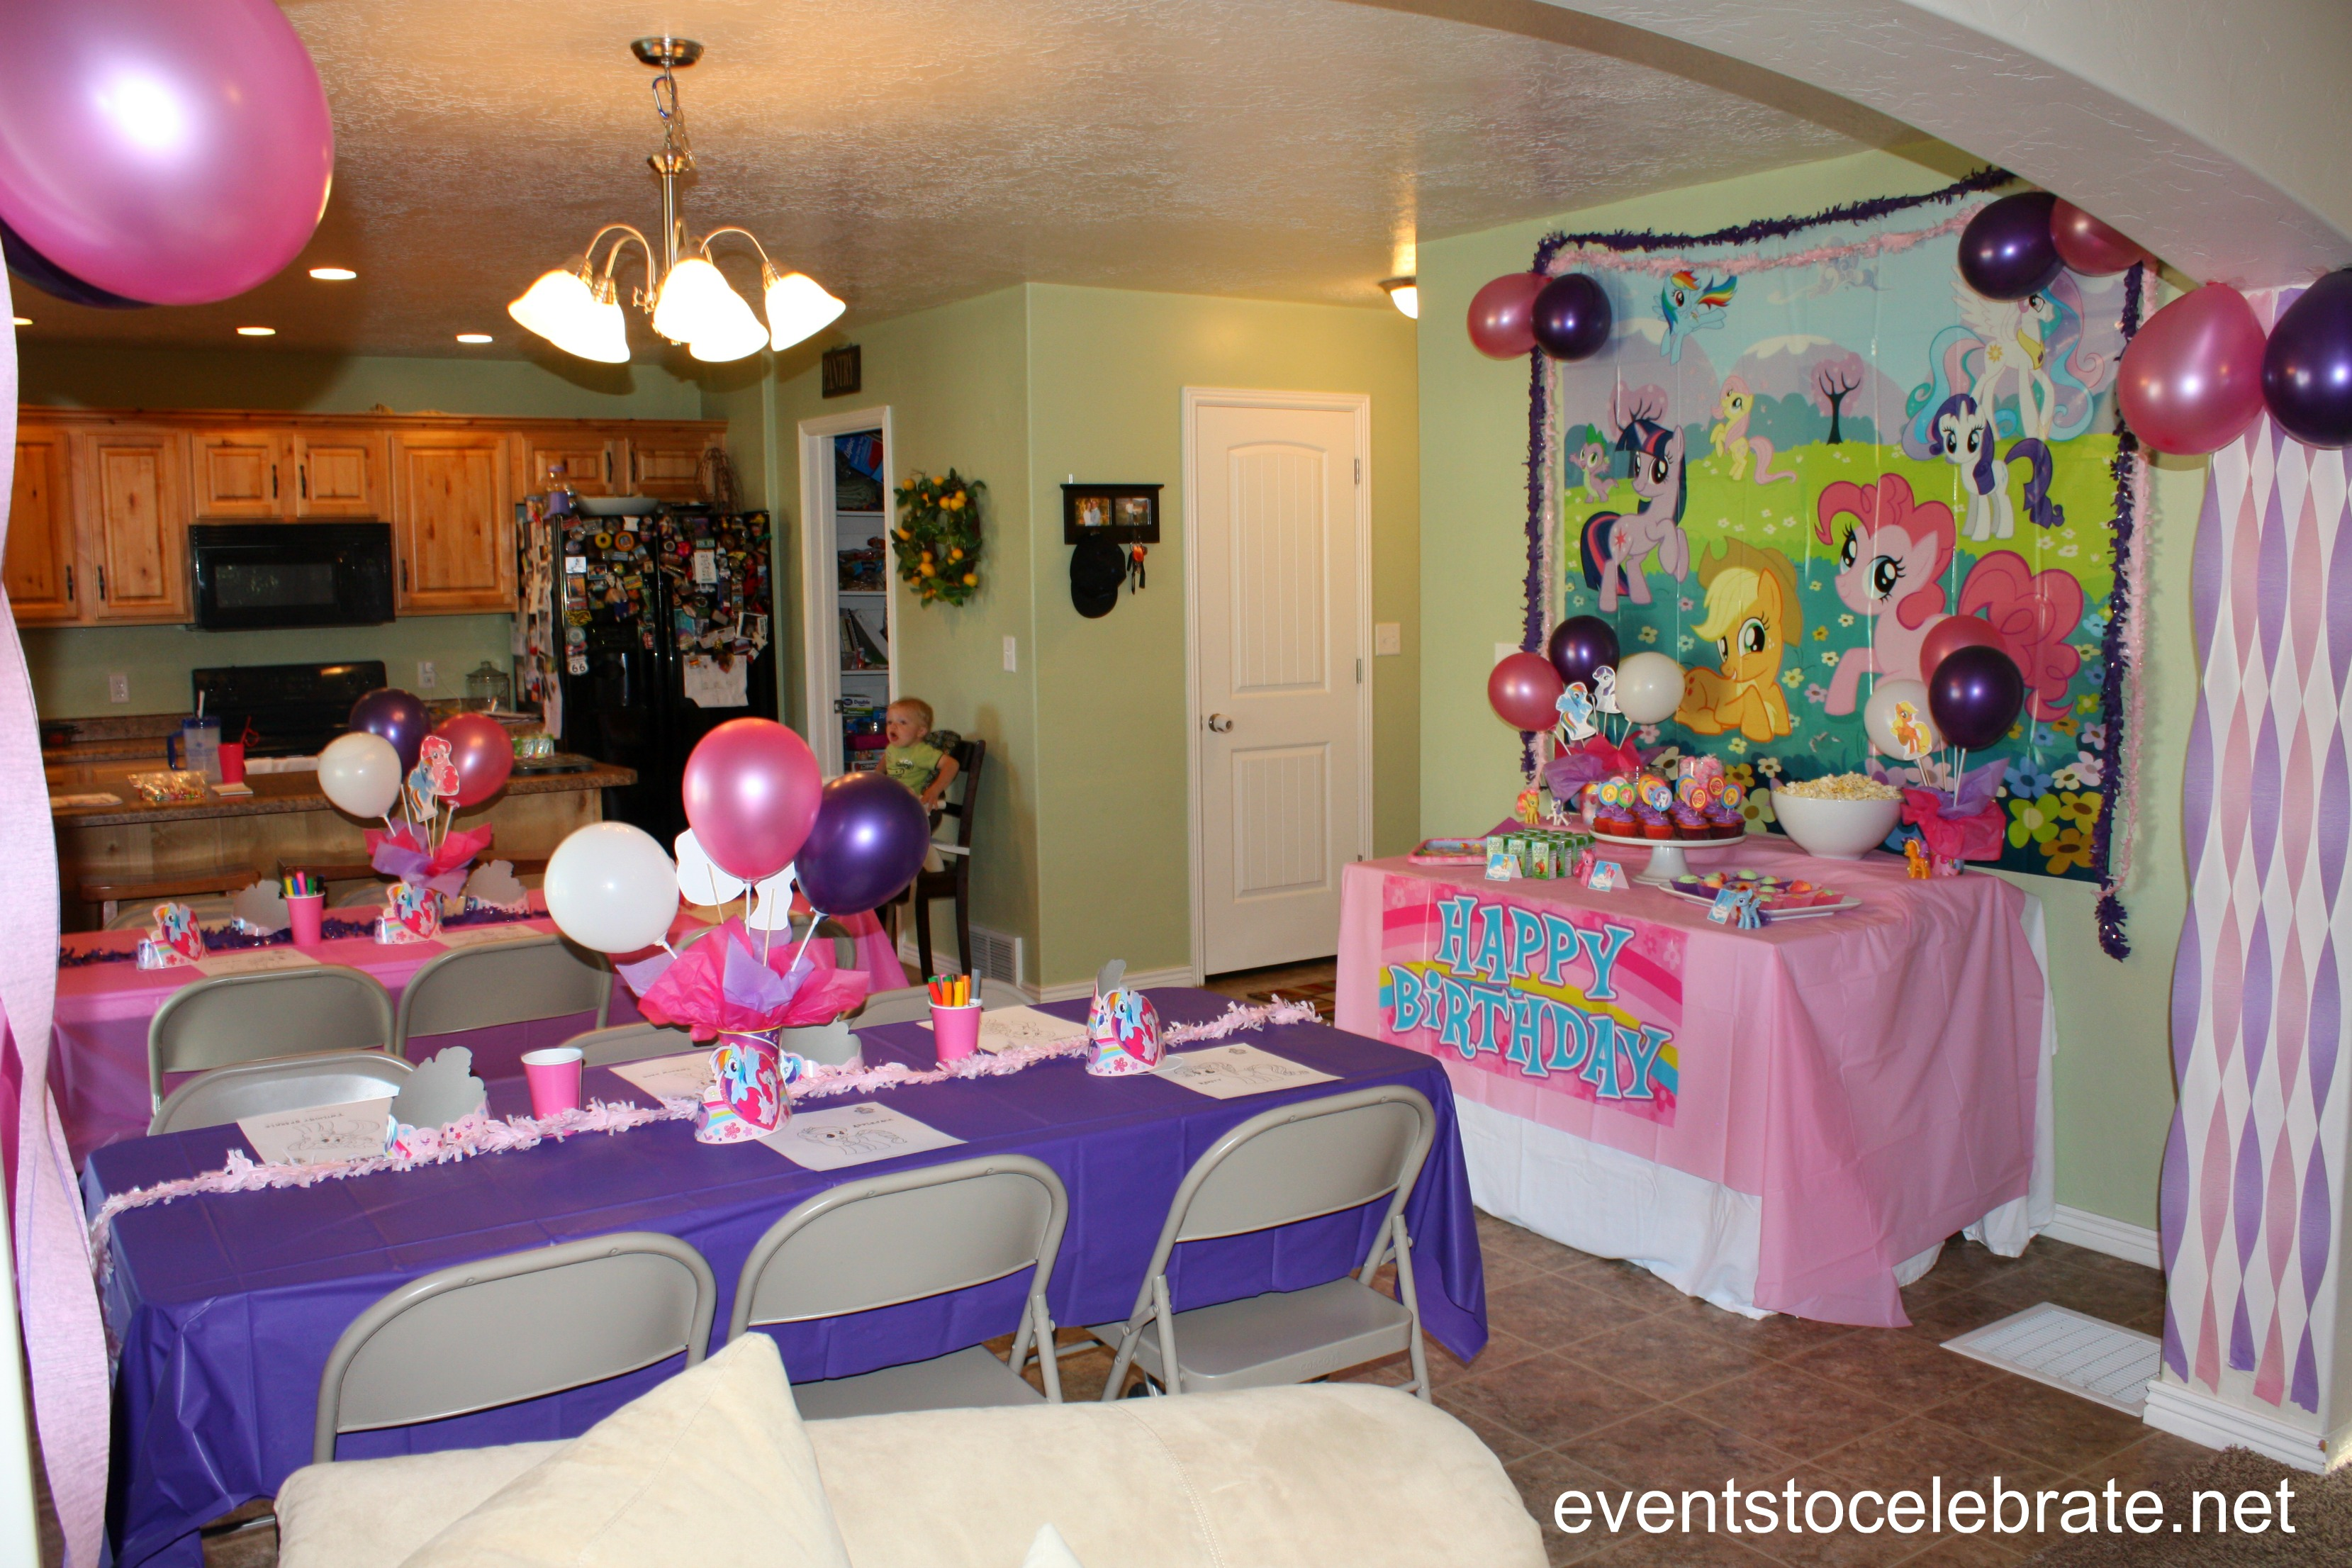 My Little Pony Party Ideas - events to CELEBRATE!